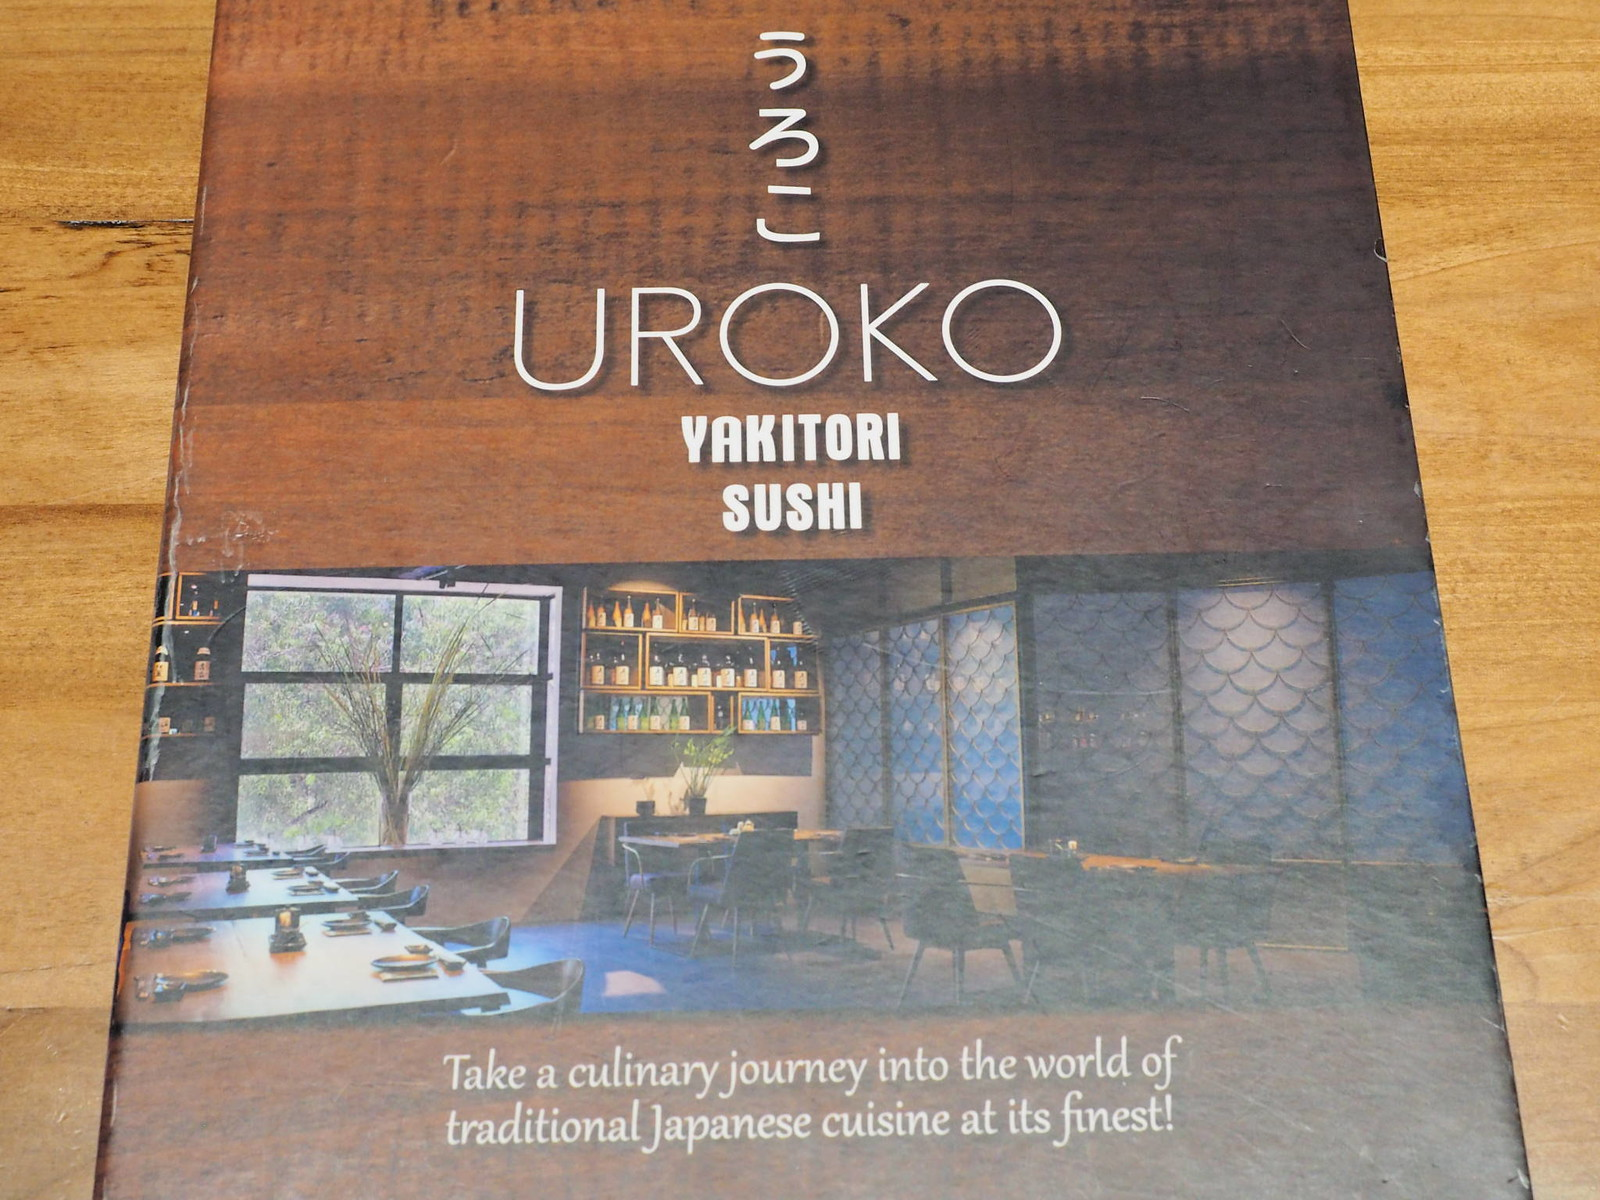 The menu of Uroko Japanese Cuisine at Section 17, Petaling Jaya